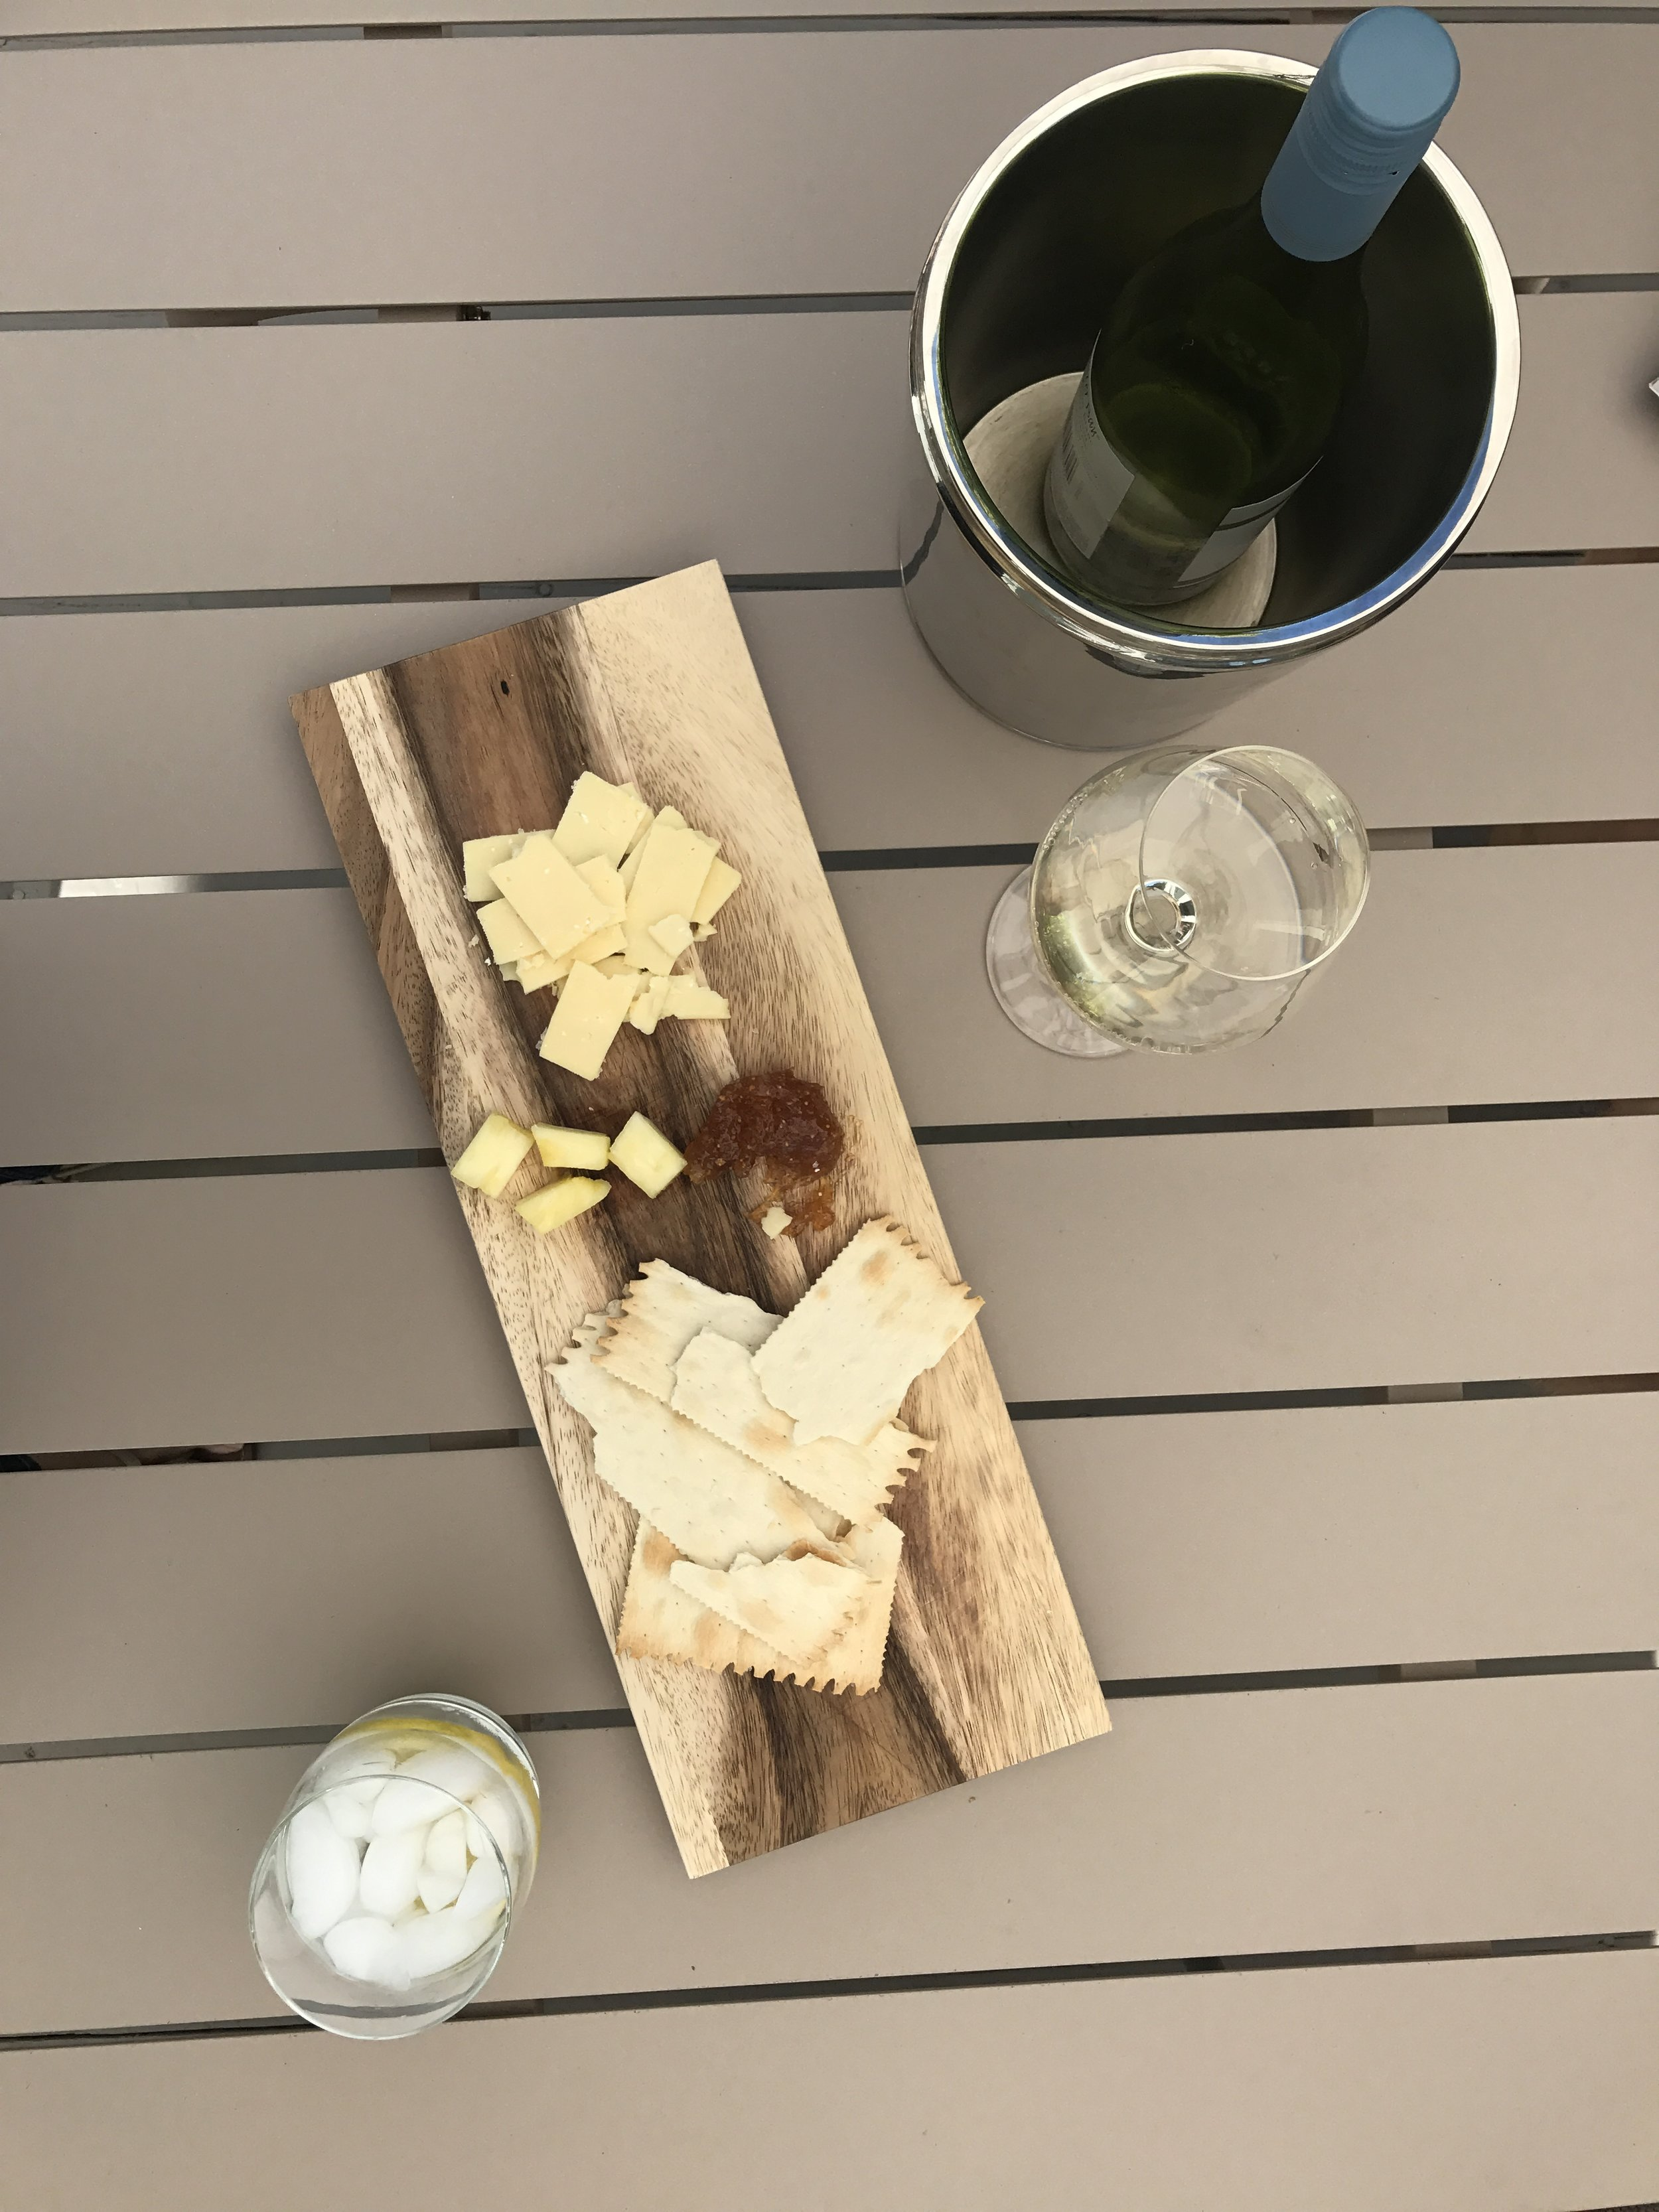 Sunday afternoon cheese platter =) With white wine for my Beautiful Husband and a lemon water for me!